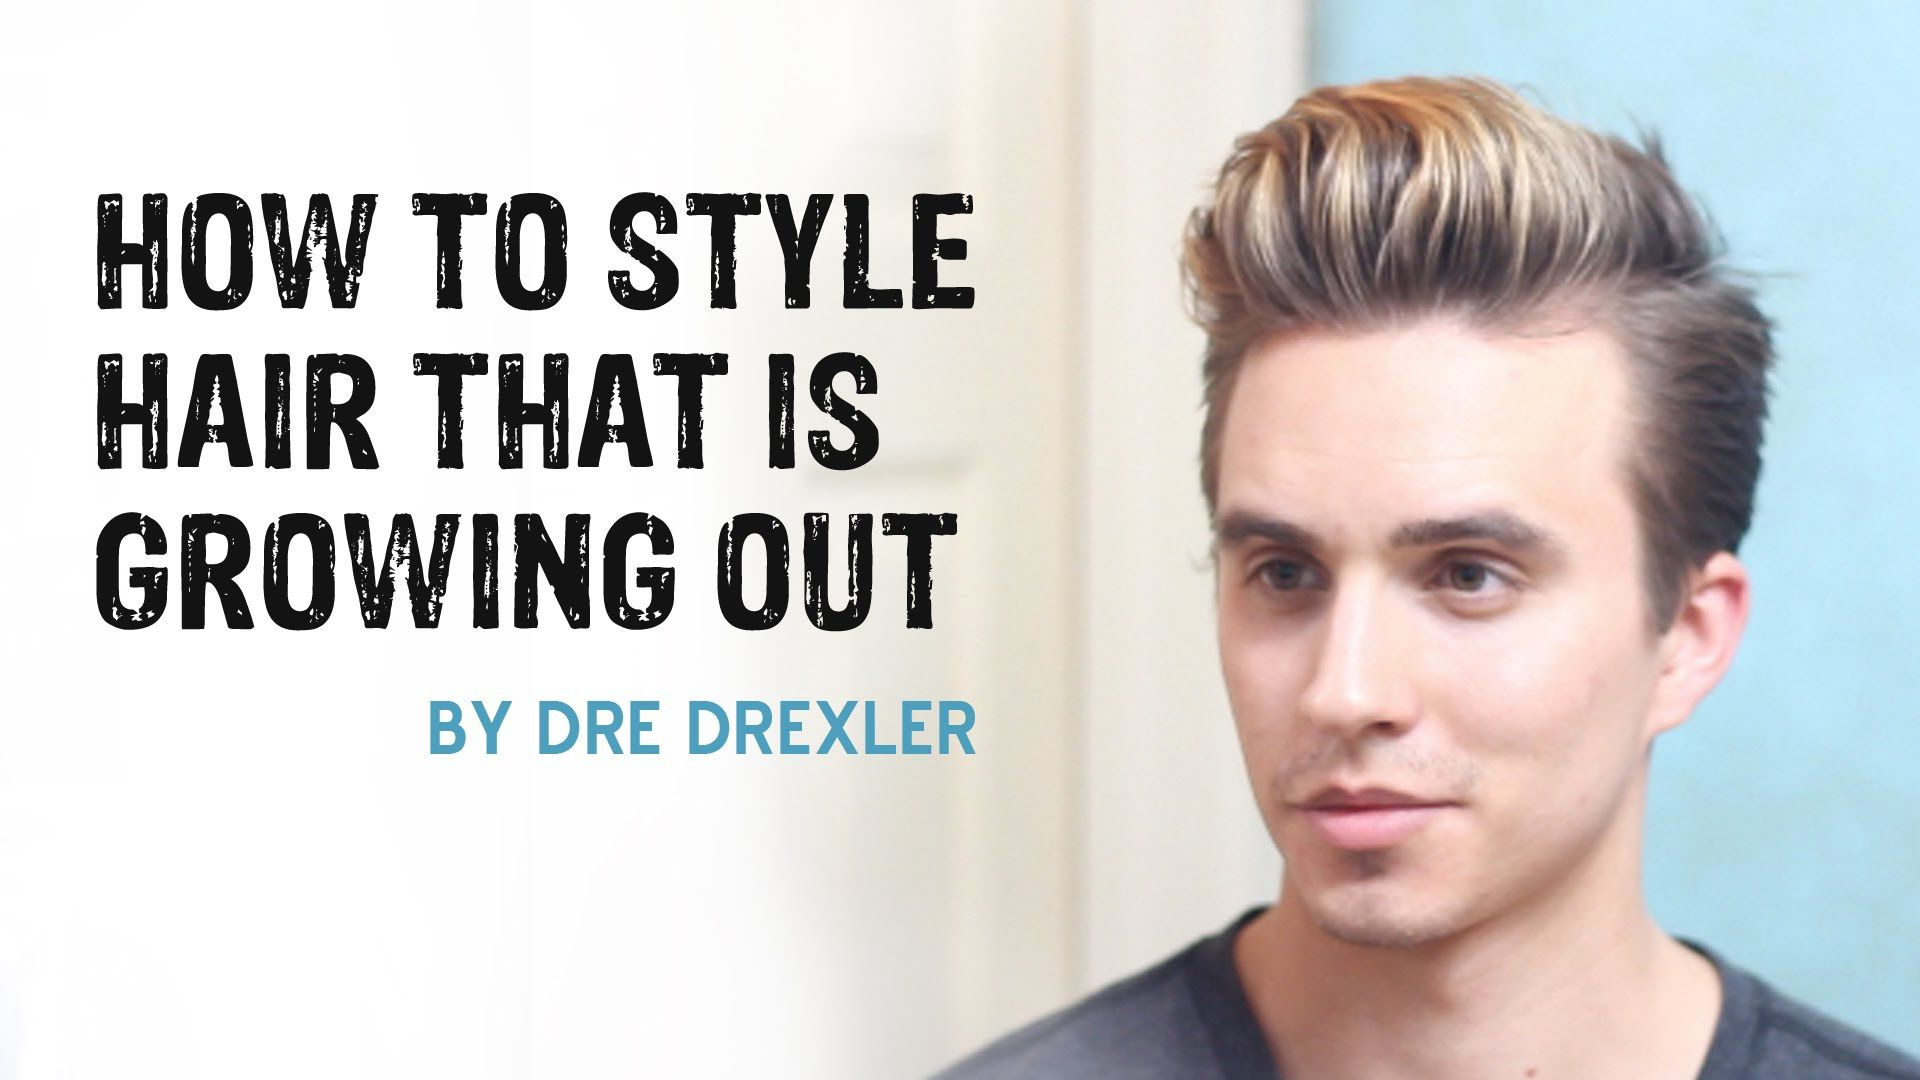 How To Style Hair Growing Out Ditching The Undercut Men S Hairstyles Growing Out Hair Growing Hair Out Men Growing Your Hair Out